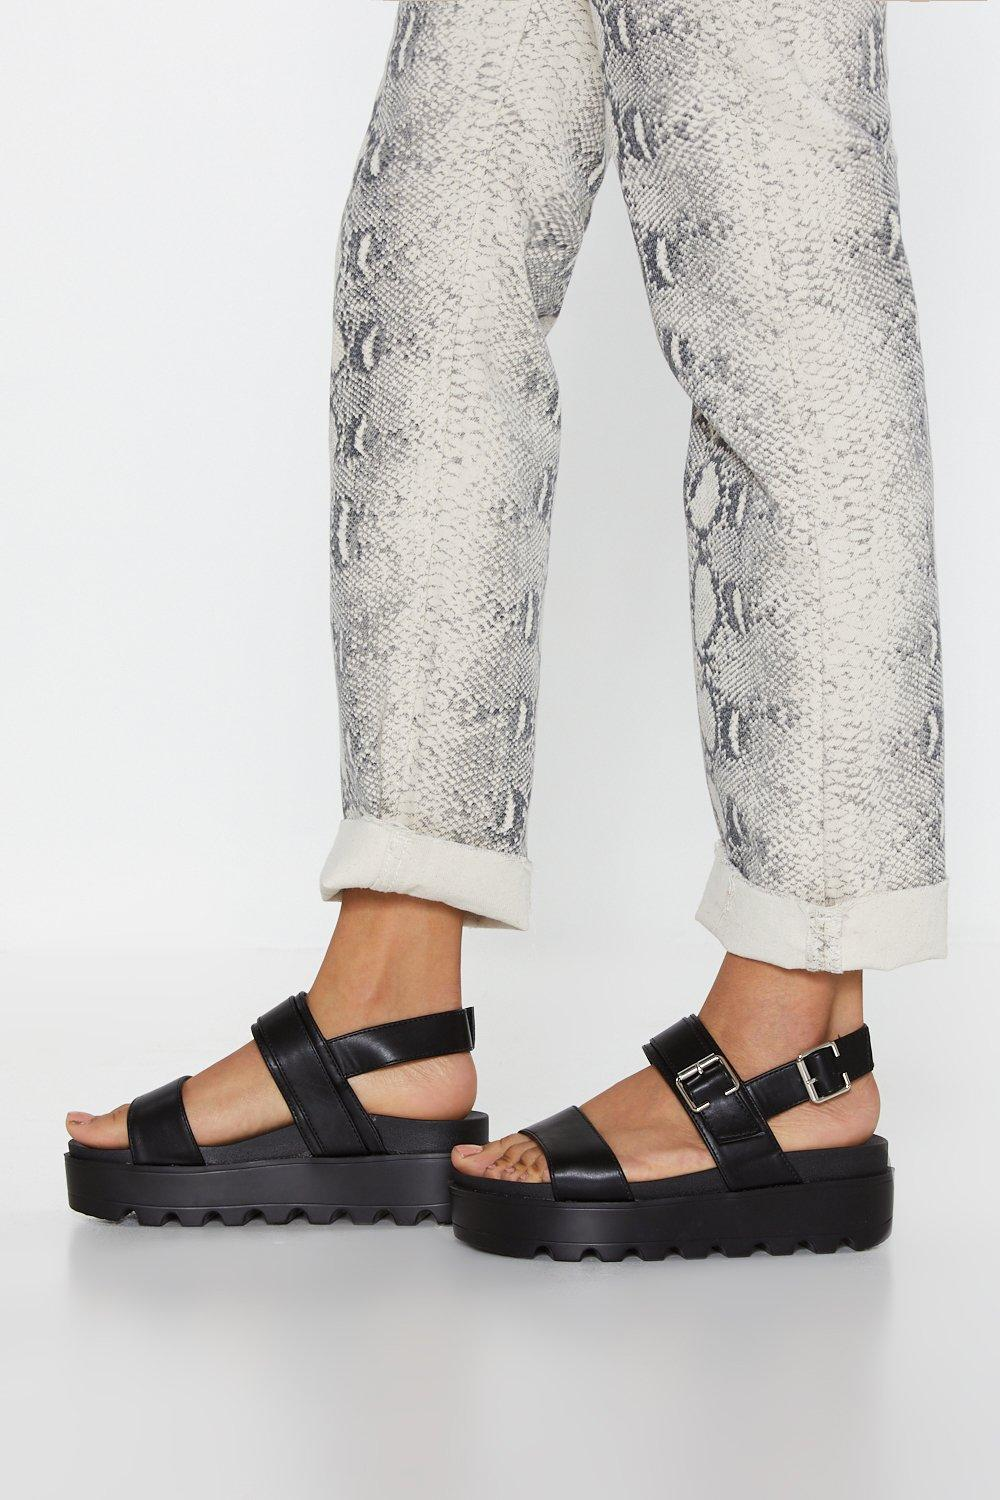 Work Your Way Up Faux Leather Platform Sandals by Nasty Gal